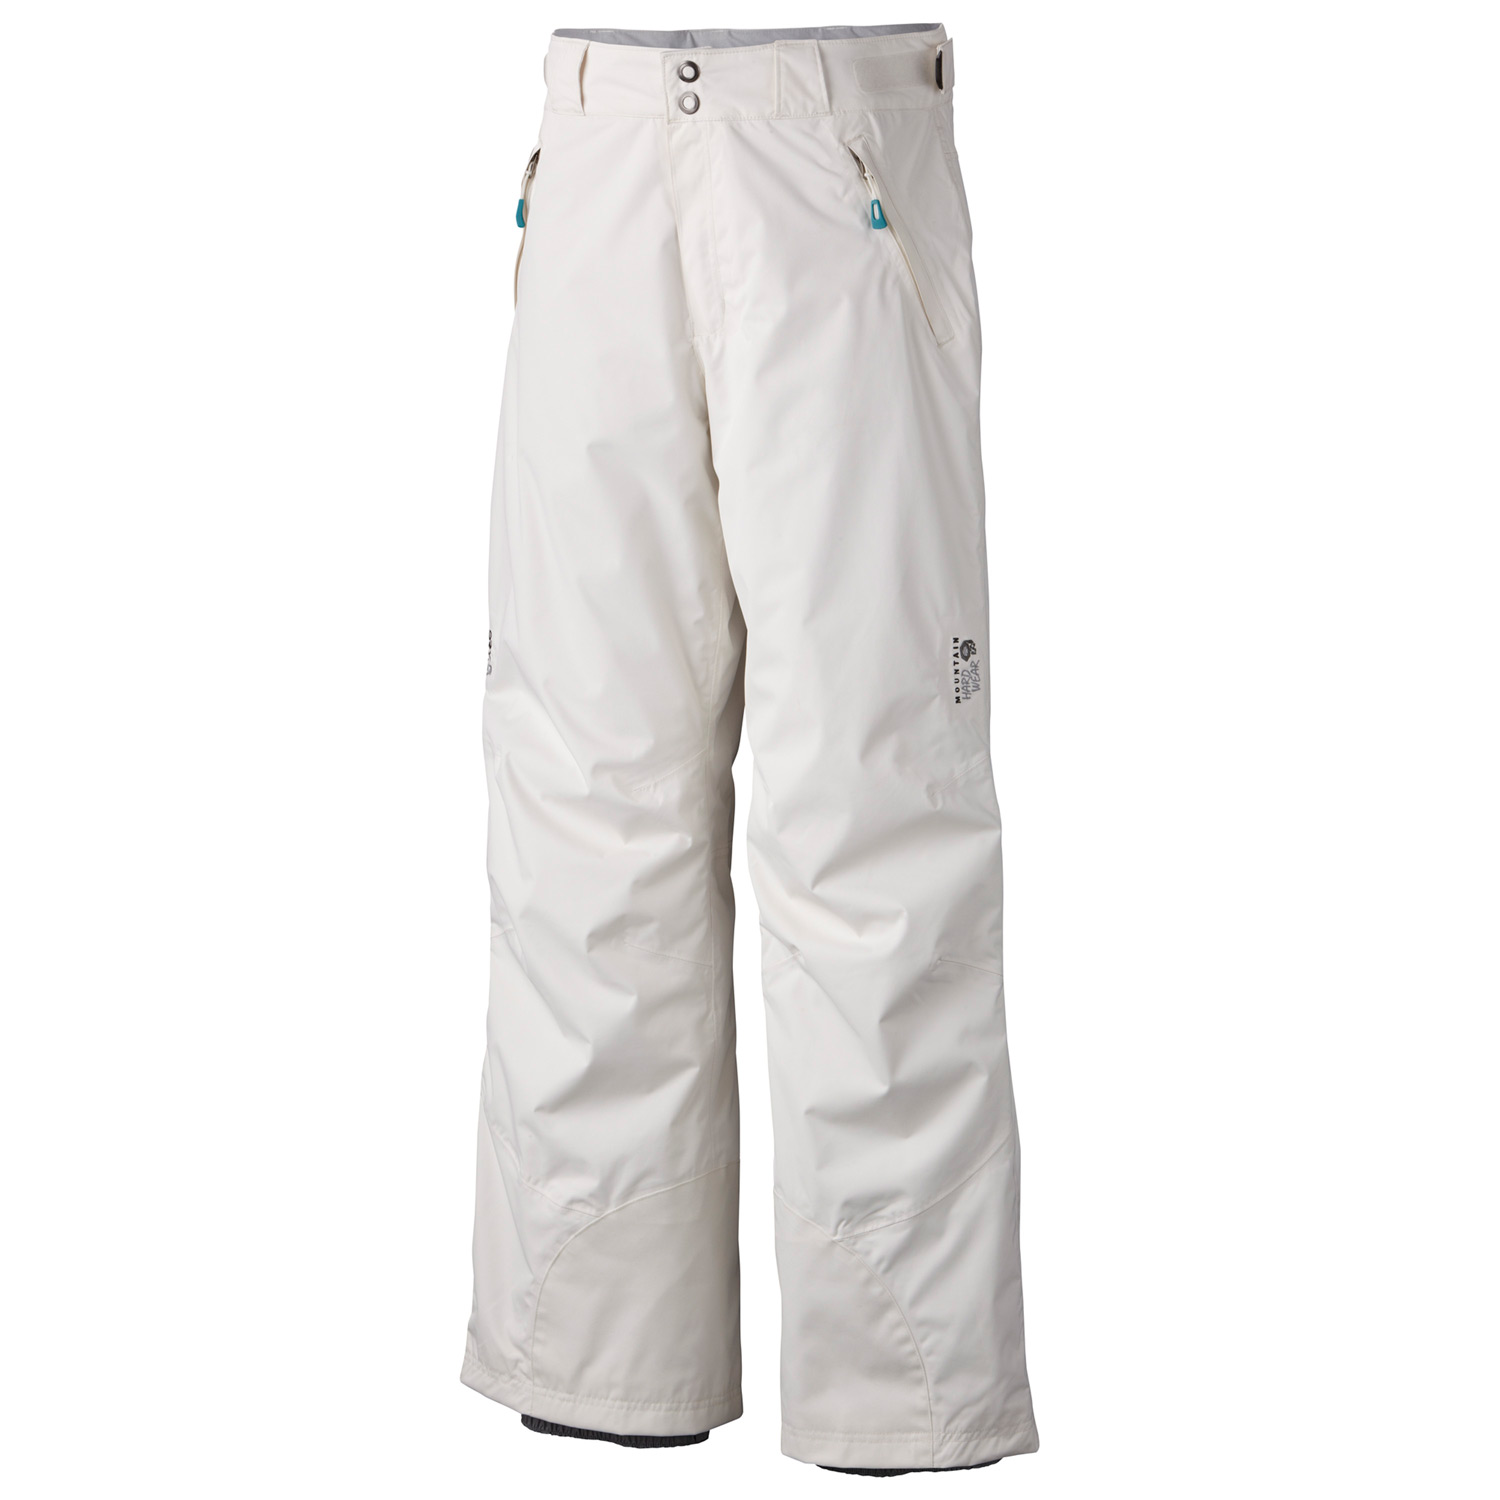 Ski Lap on: Lightweight, with great breathability so you won't sweat out. Thigh vents, edge guards and powder cuffs with bonus fleece lined hand pockets. A reliable, waterproof and windproof ski shell pant. - $115.95